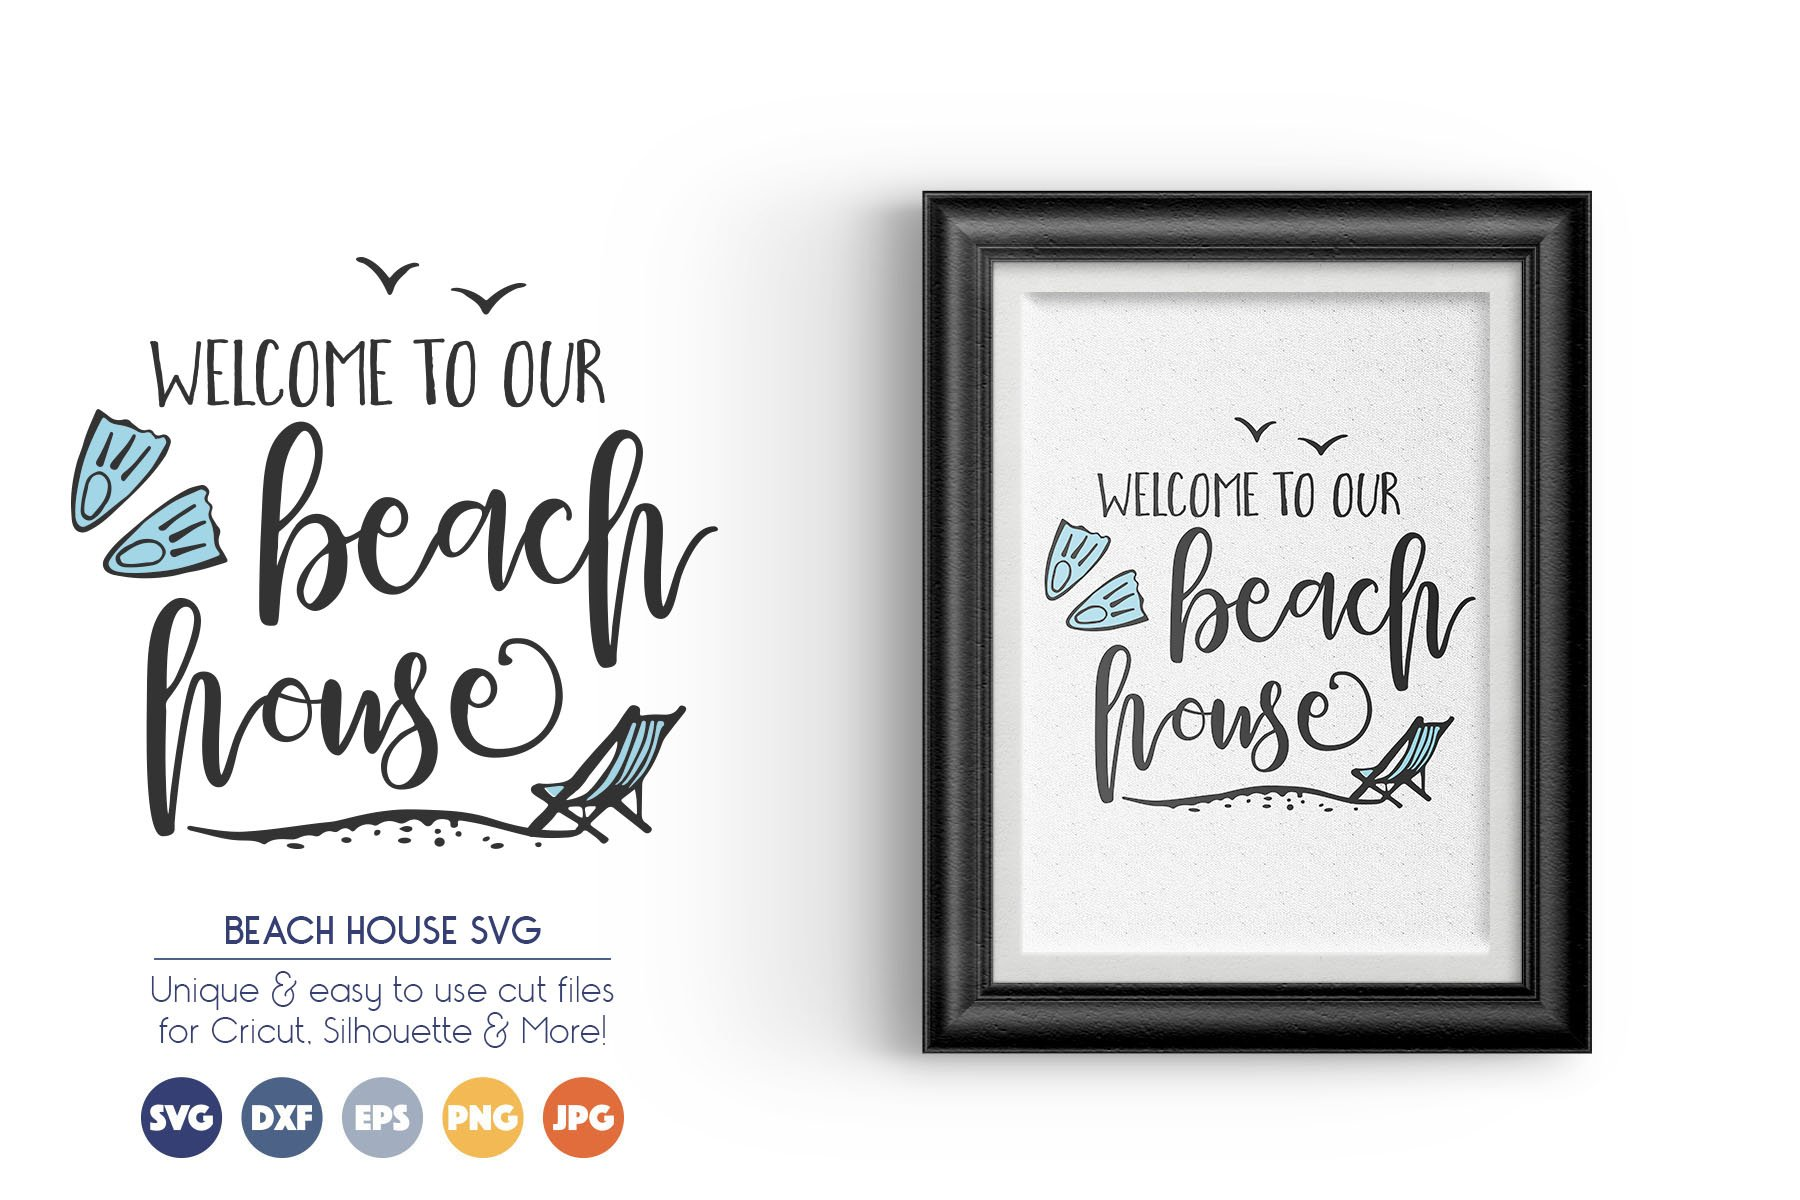 Welcome to Our Beach House - Summer SVG Cut Files example image 1